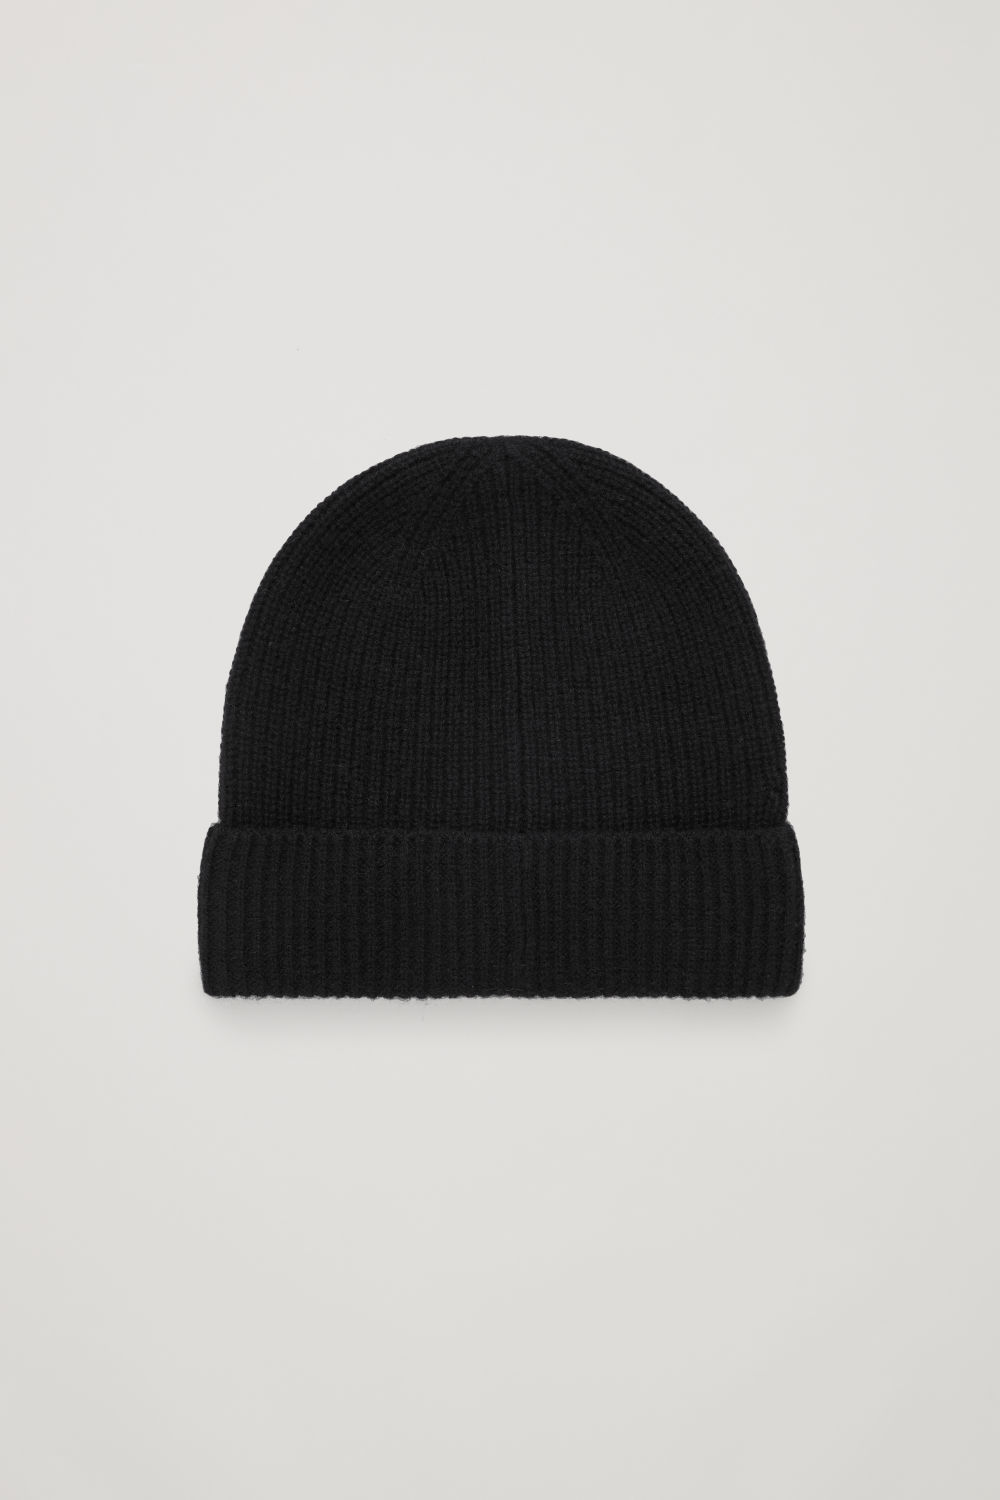 코스 COS KNITTED CASHMERE HAT,Black